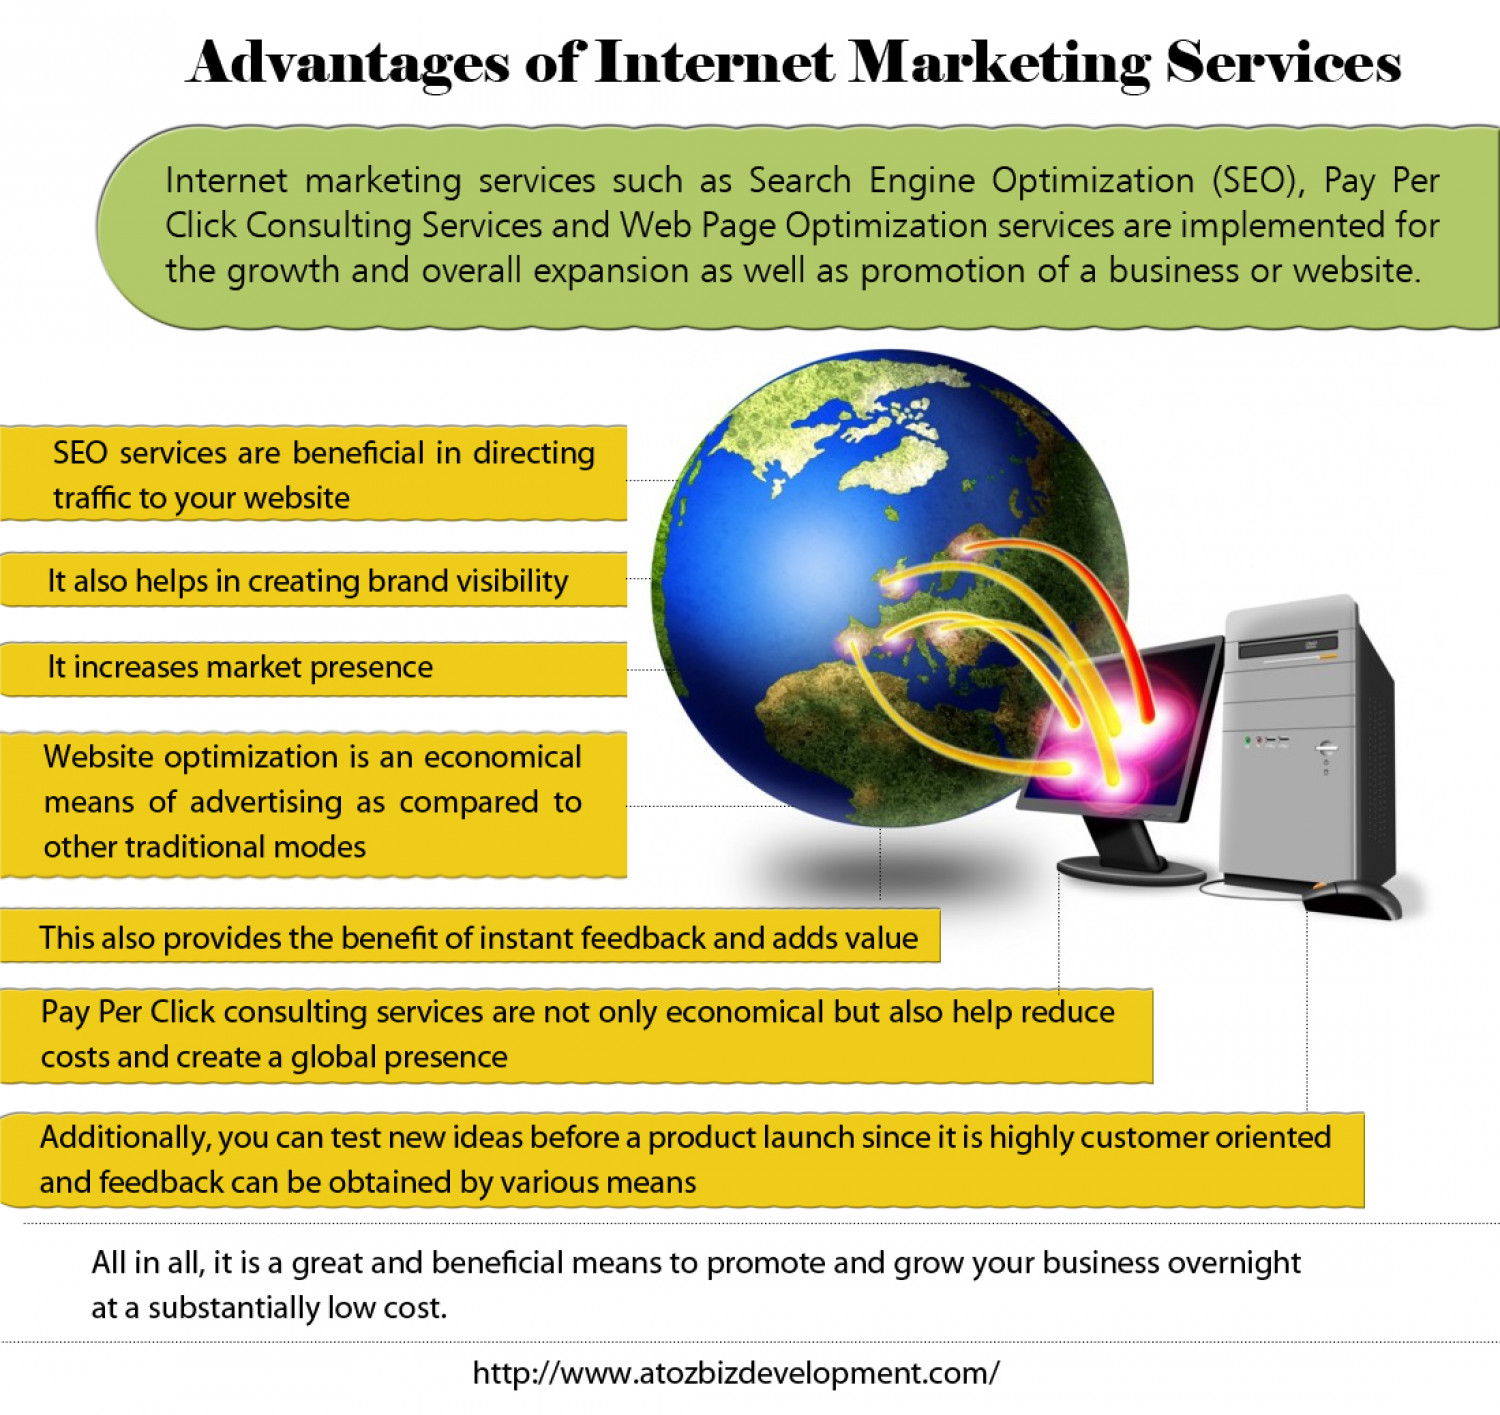 benefits of internet The internet offers several advantages such as access to information, communication, e-commerce, entertainment and global socialization in addition, the internet has directly and indirectly led to job creation consider the following advantages of the internet: the internet is a treasure trove of.